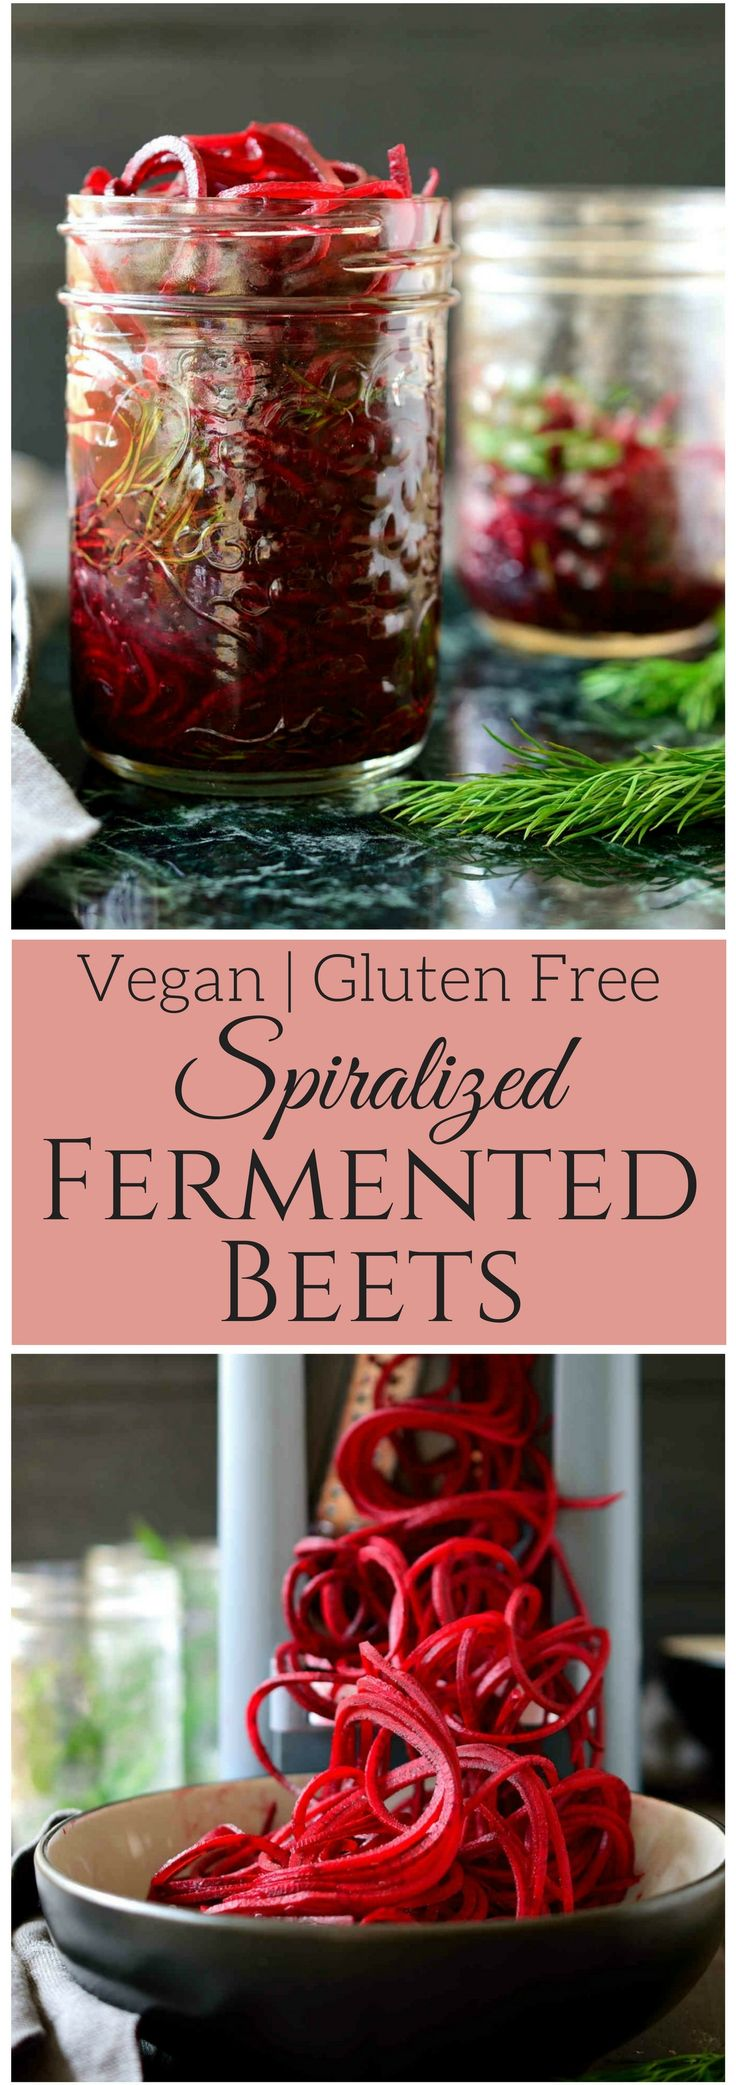 Spiralized fermented beets are an amazingly versatile condiment that's stupid easy to make and incredibly flavourful. All you need are beets, salt, dill and time to get these delicious sweet and sour beet noodles that you can use in salads, sandwiched, Buddha bowls, avocado toast and much more!